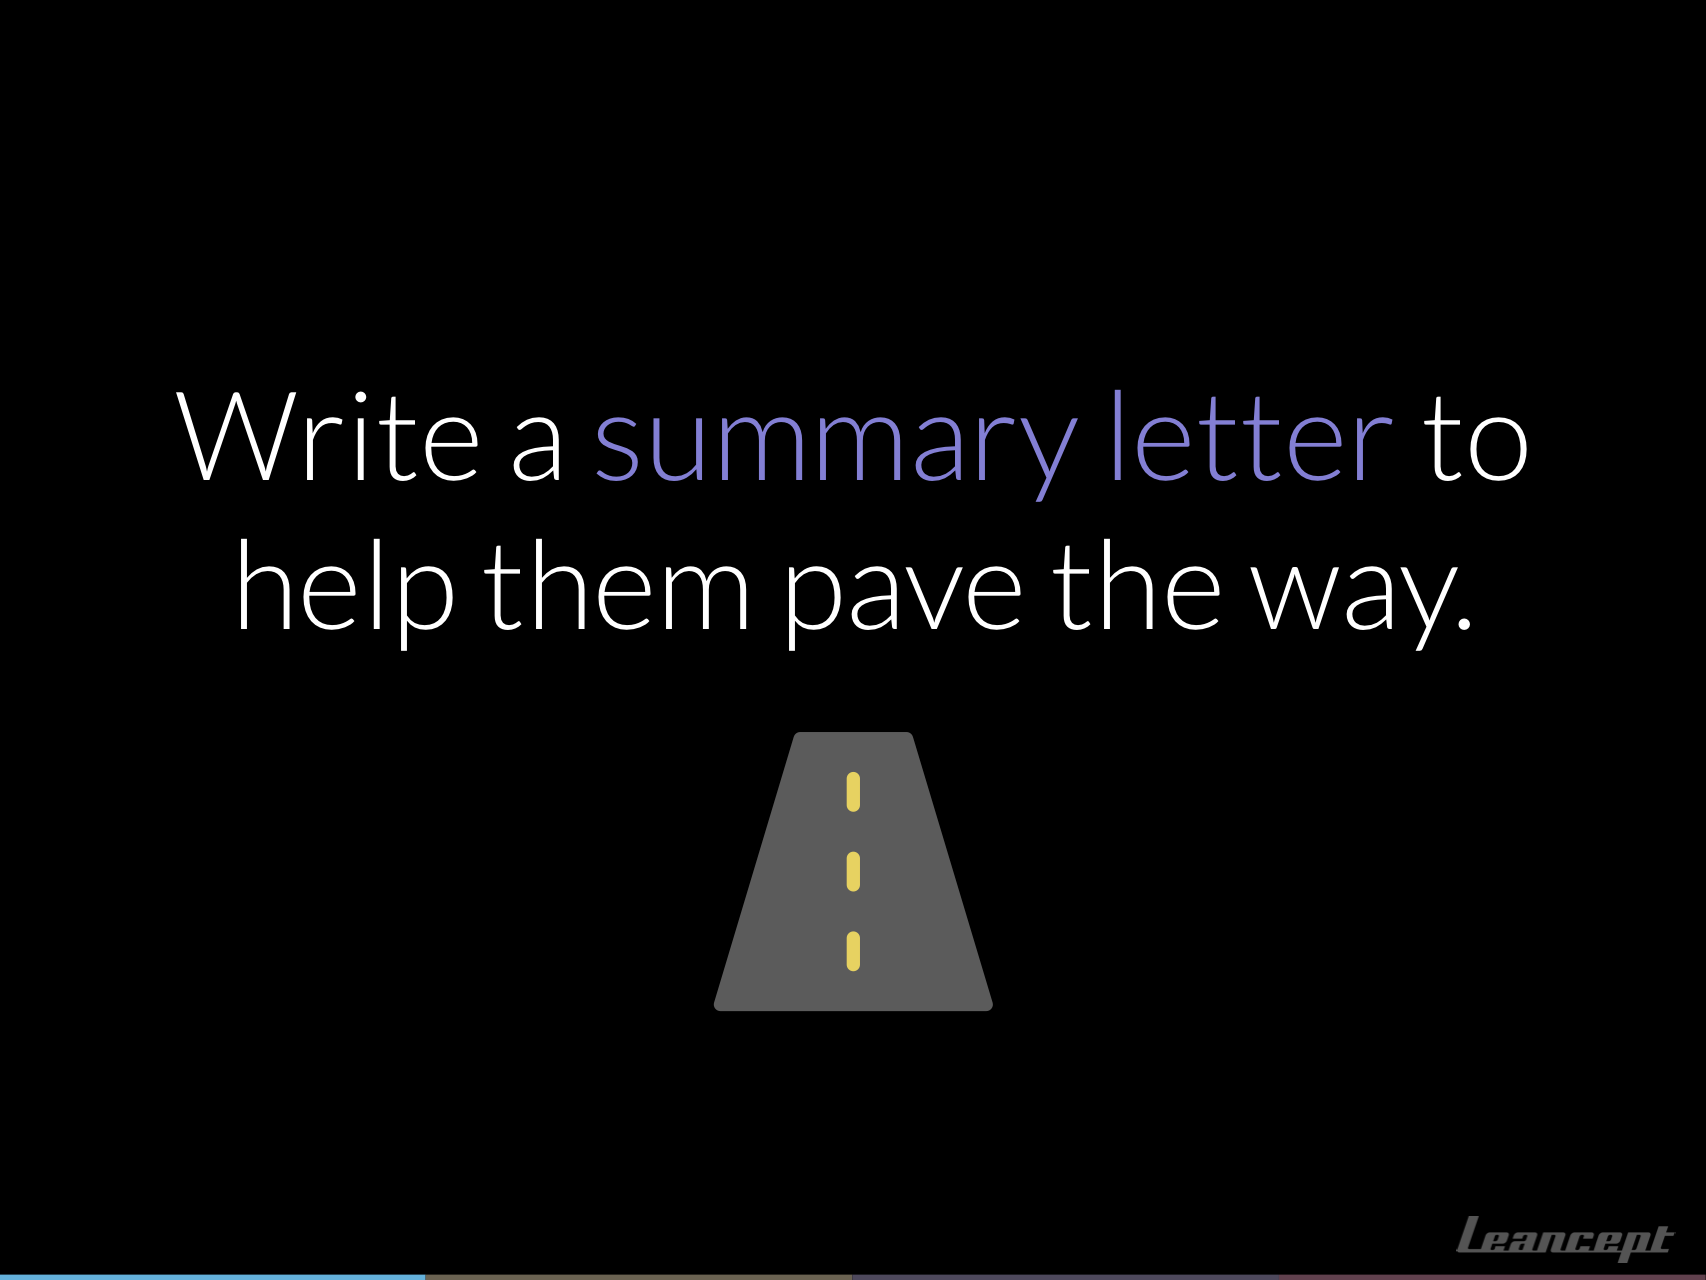 Write a summary letter to help them pave the way.